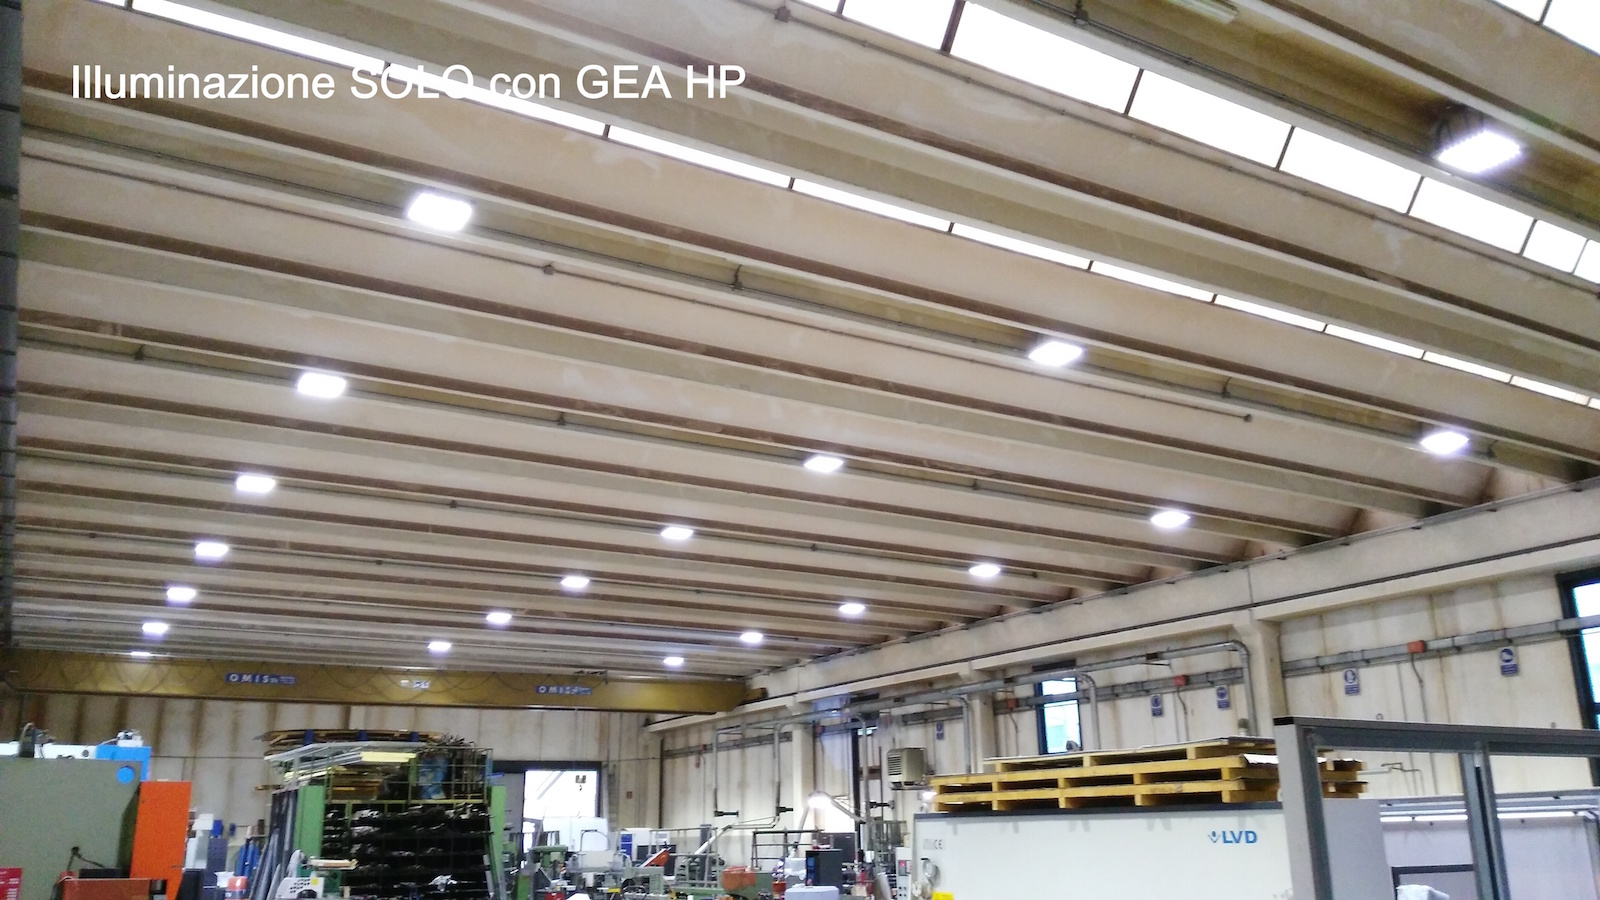 Plafoniere Led Officina : Portfolio illuminazione led e tecnologia a bp